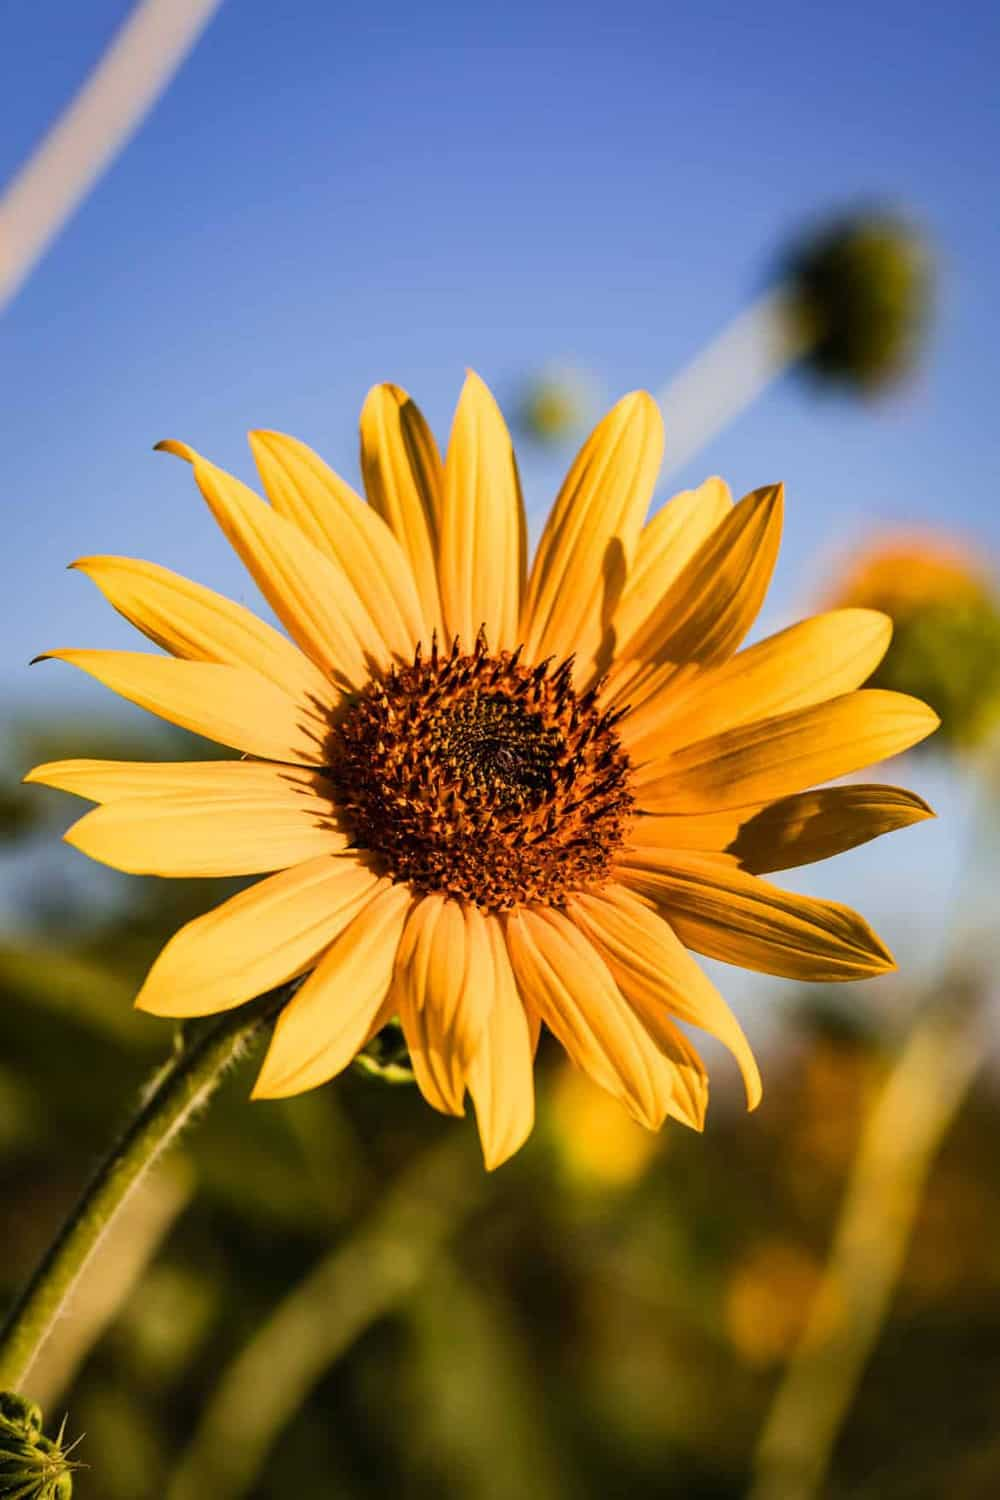 A bright yellow-orange flower in the sunlight.